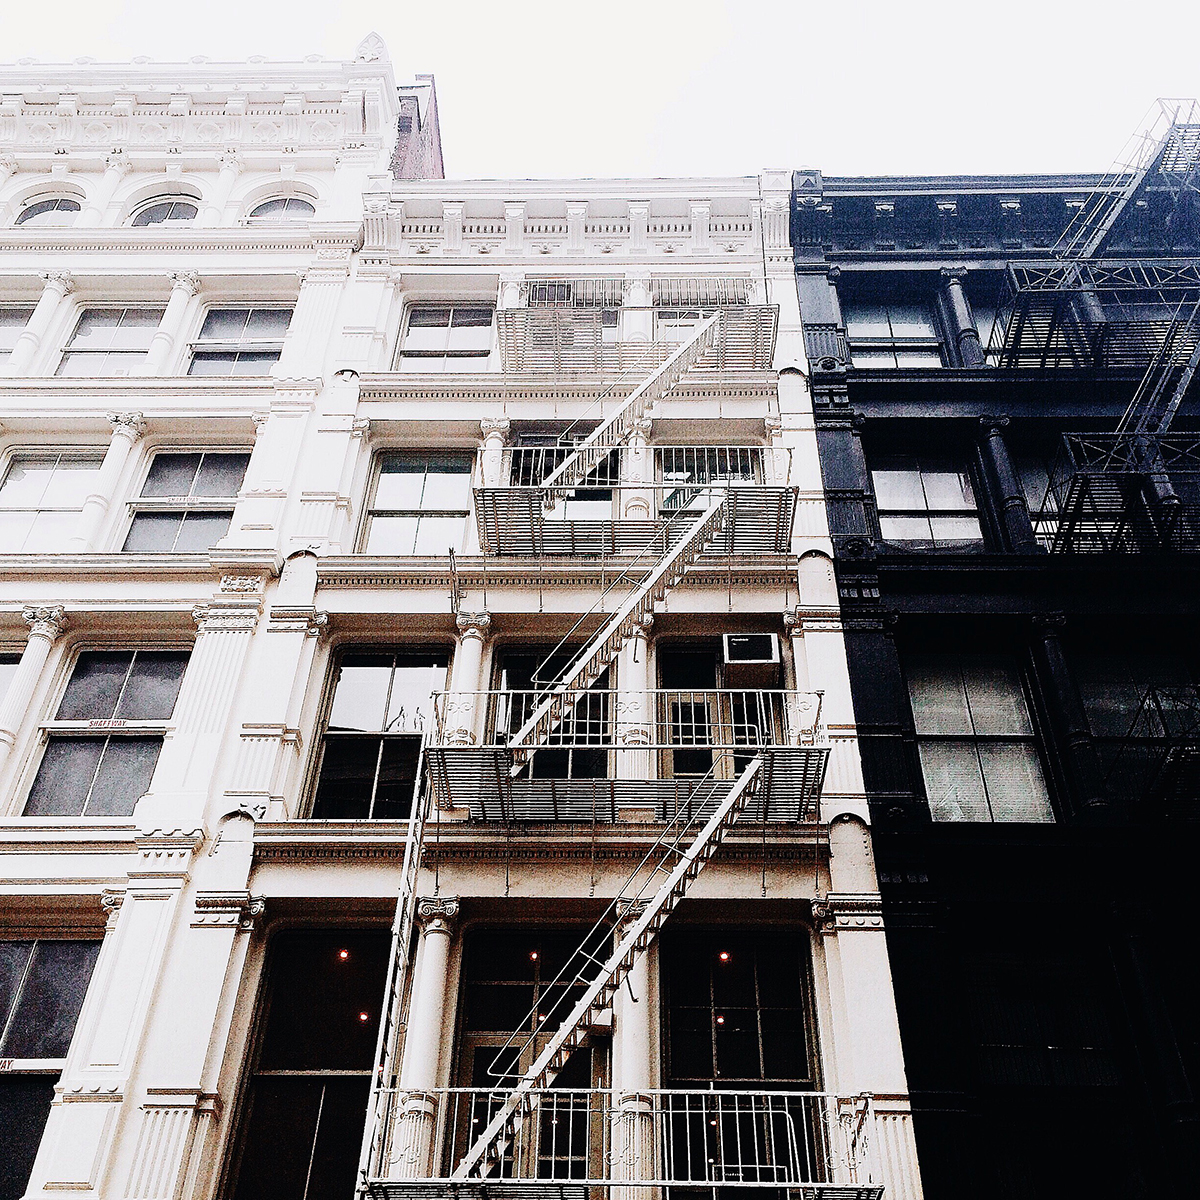 new york, soho, architecture, black, white, apartment building, manhattan, usa, united states of america